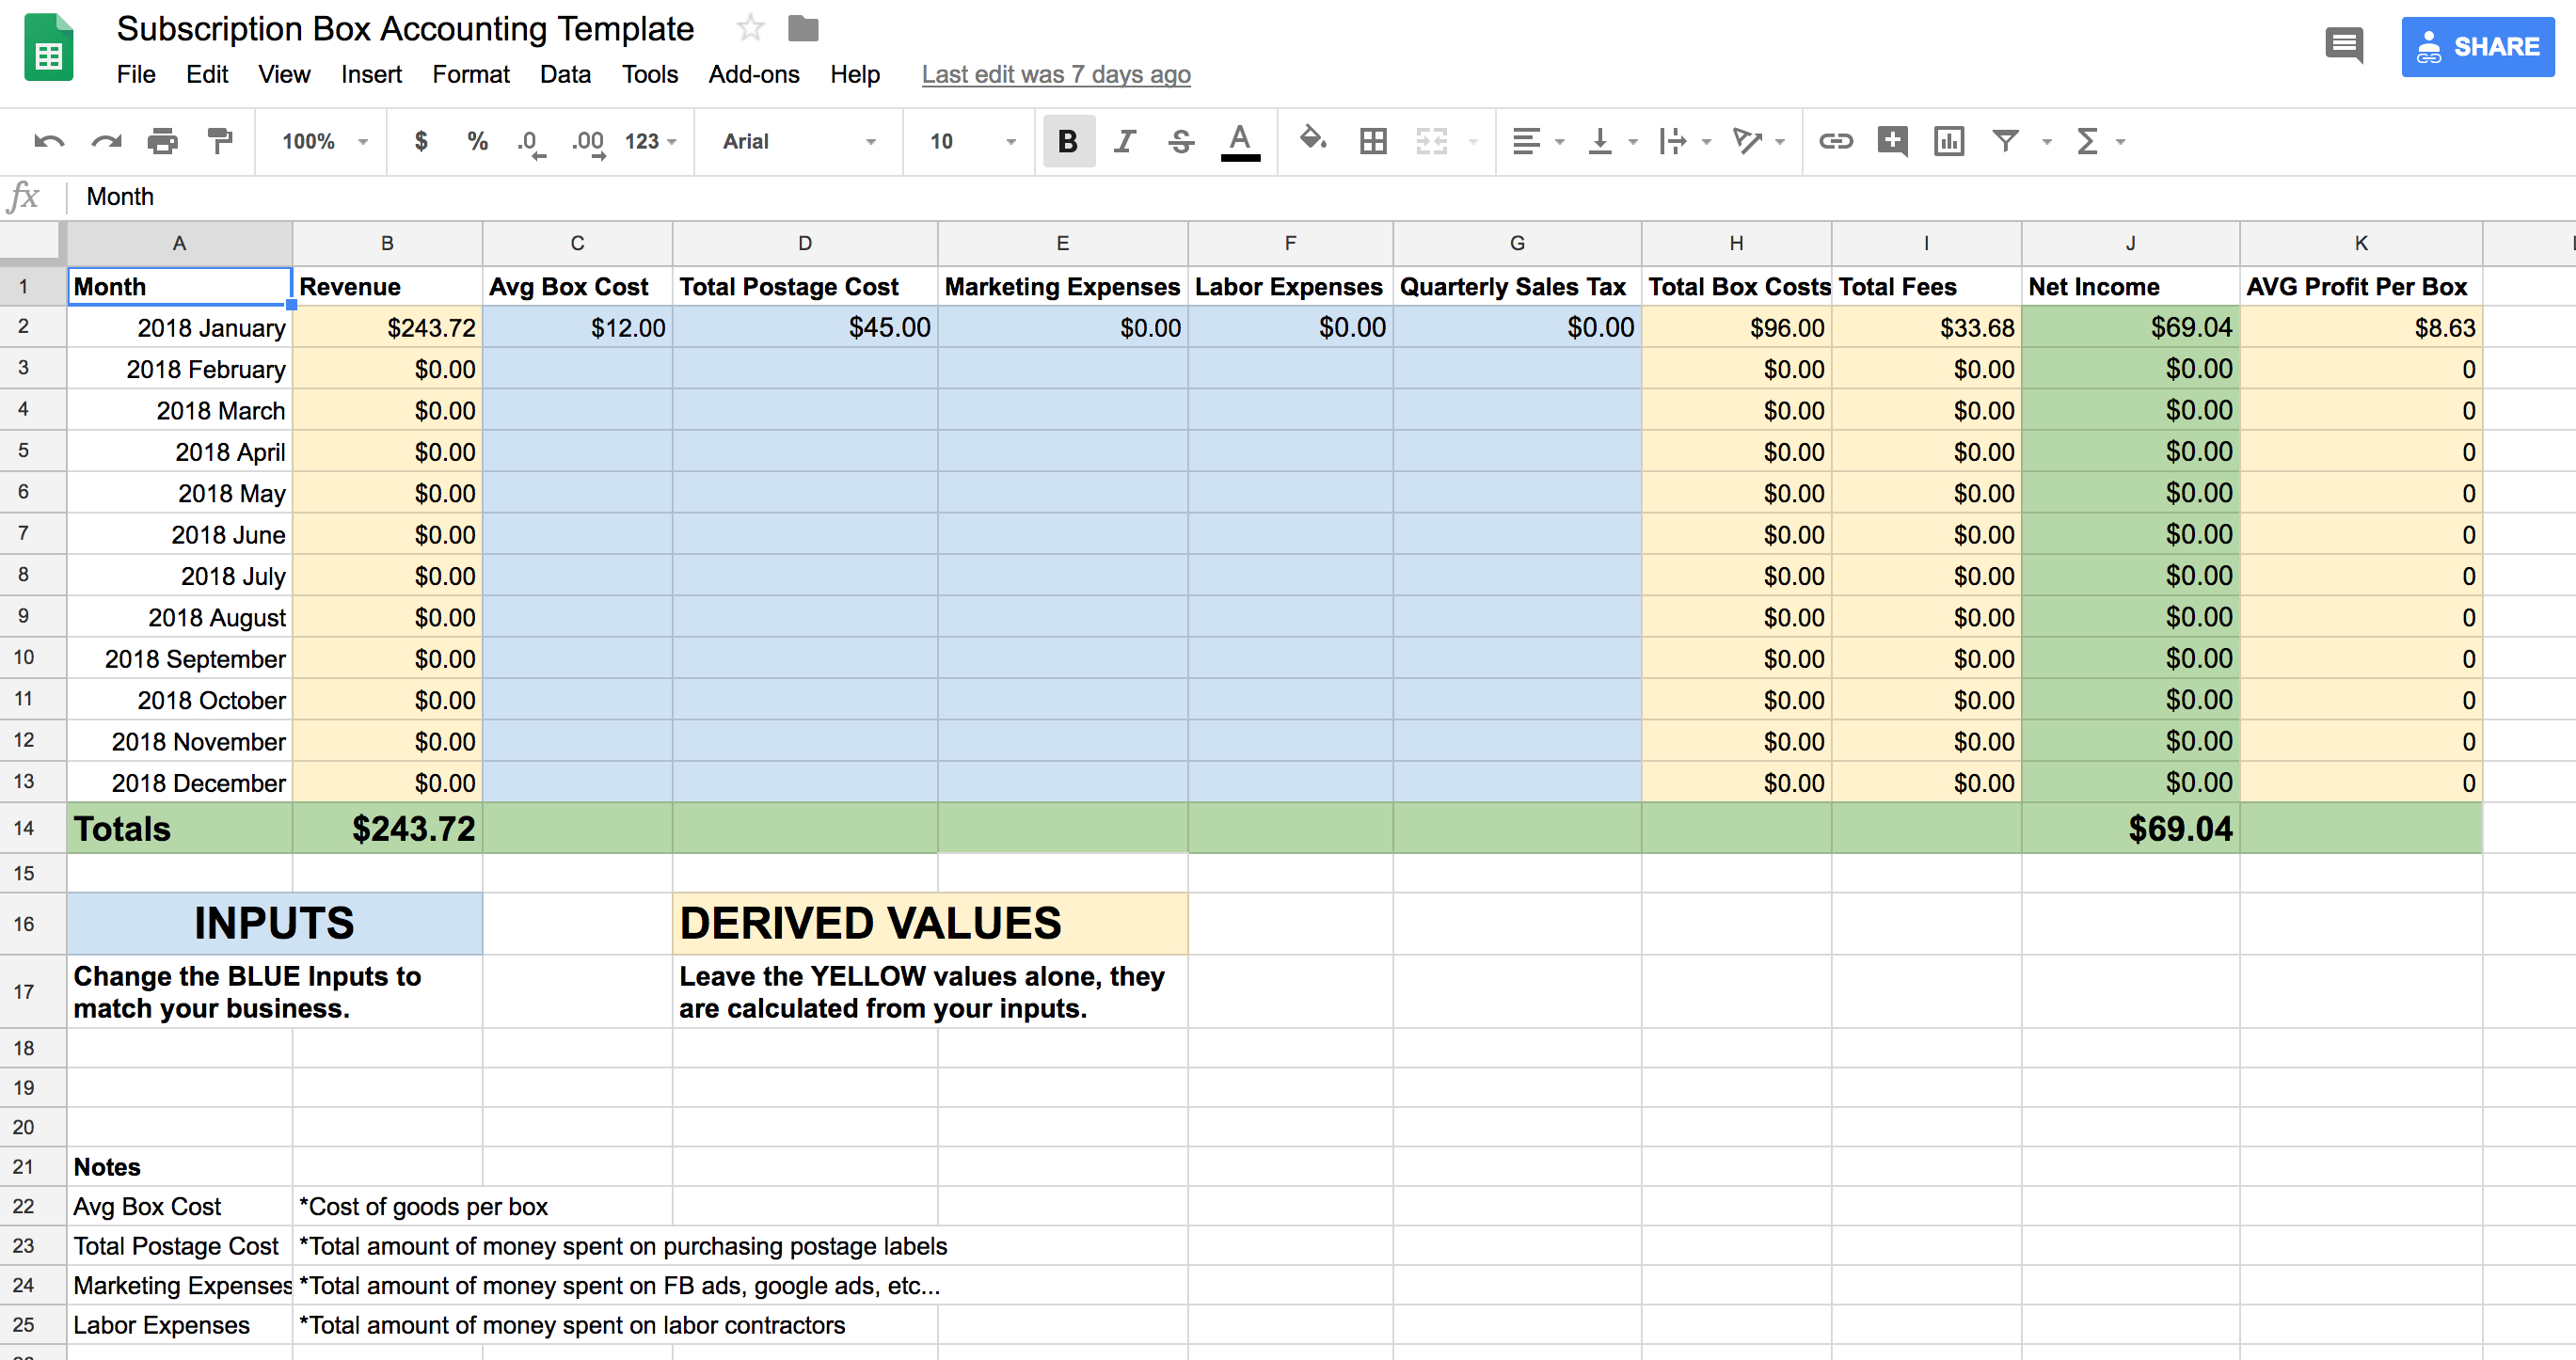 Accounting Spreadsheet Google Sheets Inside Subscription Box Accounting Spreadsheet – Tims.io